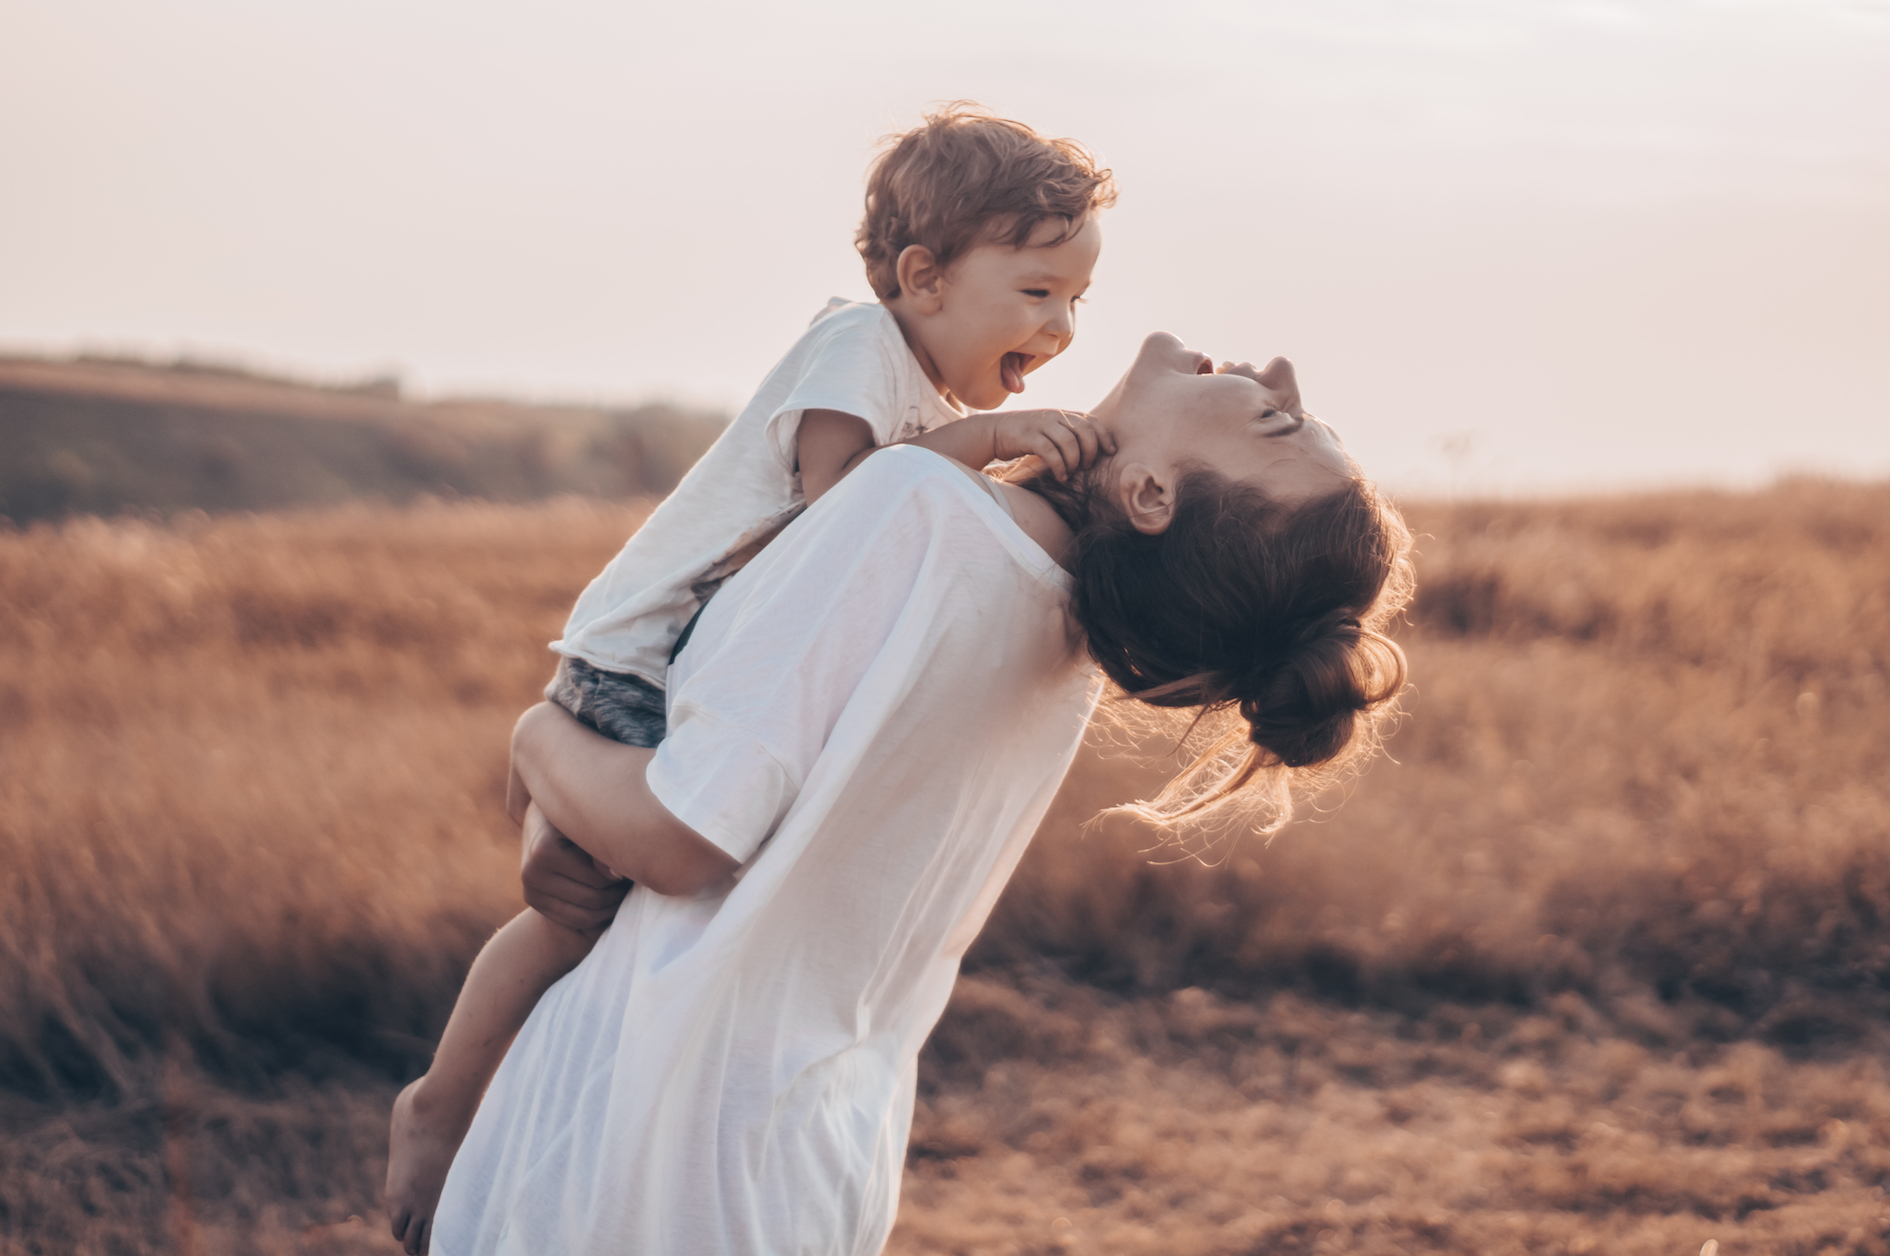 How ordinary everyday moments of mindfulness for moms allow them to be more present and engaged with the people and things that really matter.